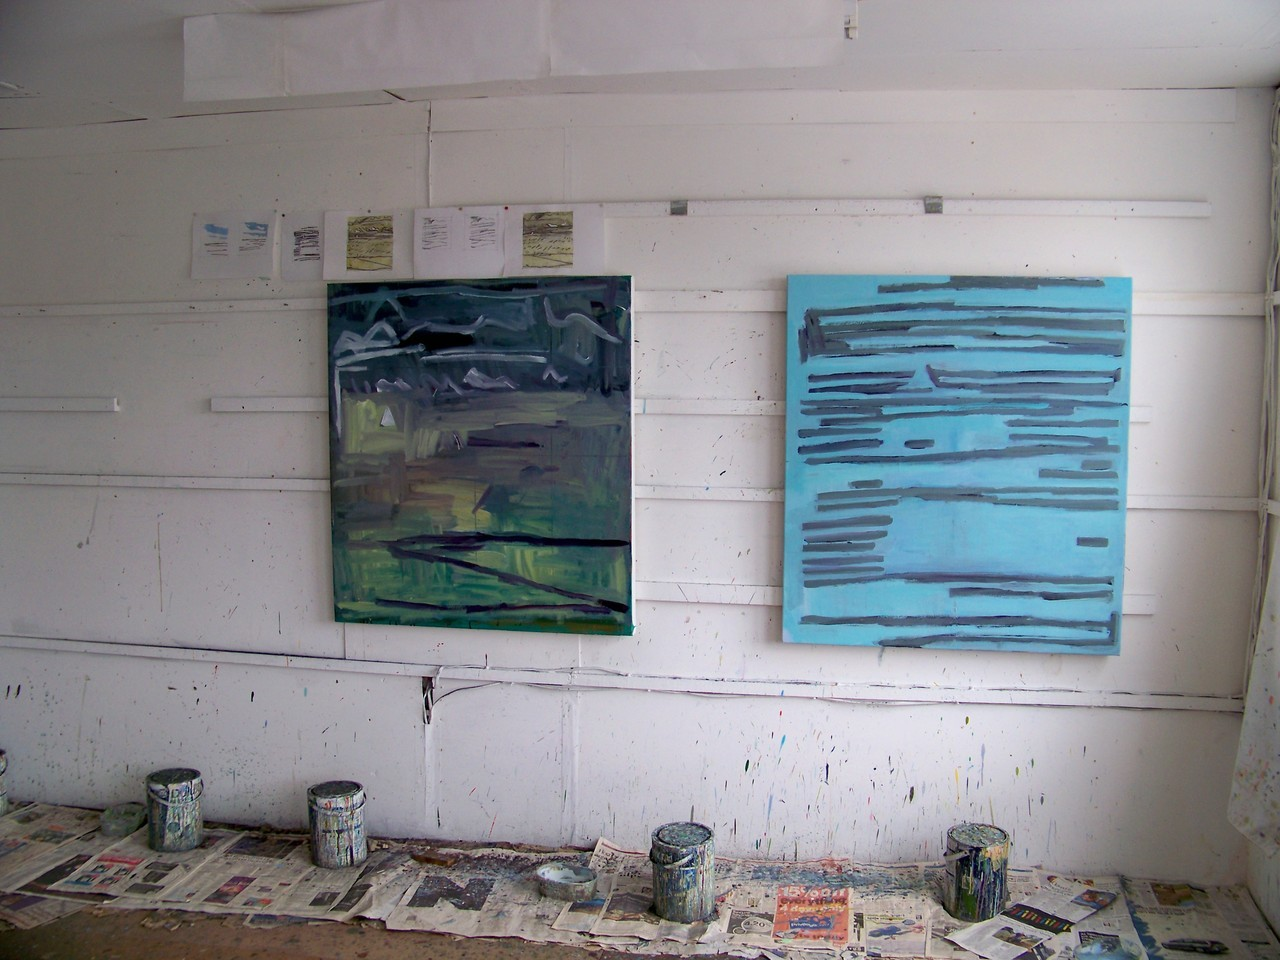 9th July 2012. Two new canvases under way in the studio this afternoon. I had been making drawings of rain clearing over the sea this morning.